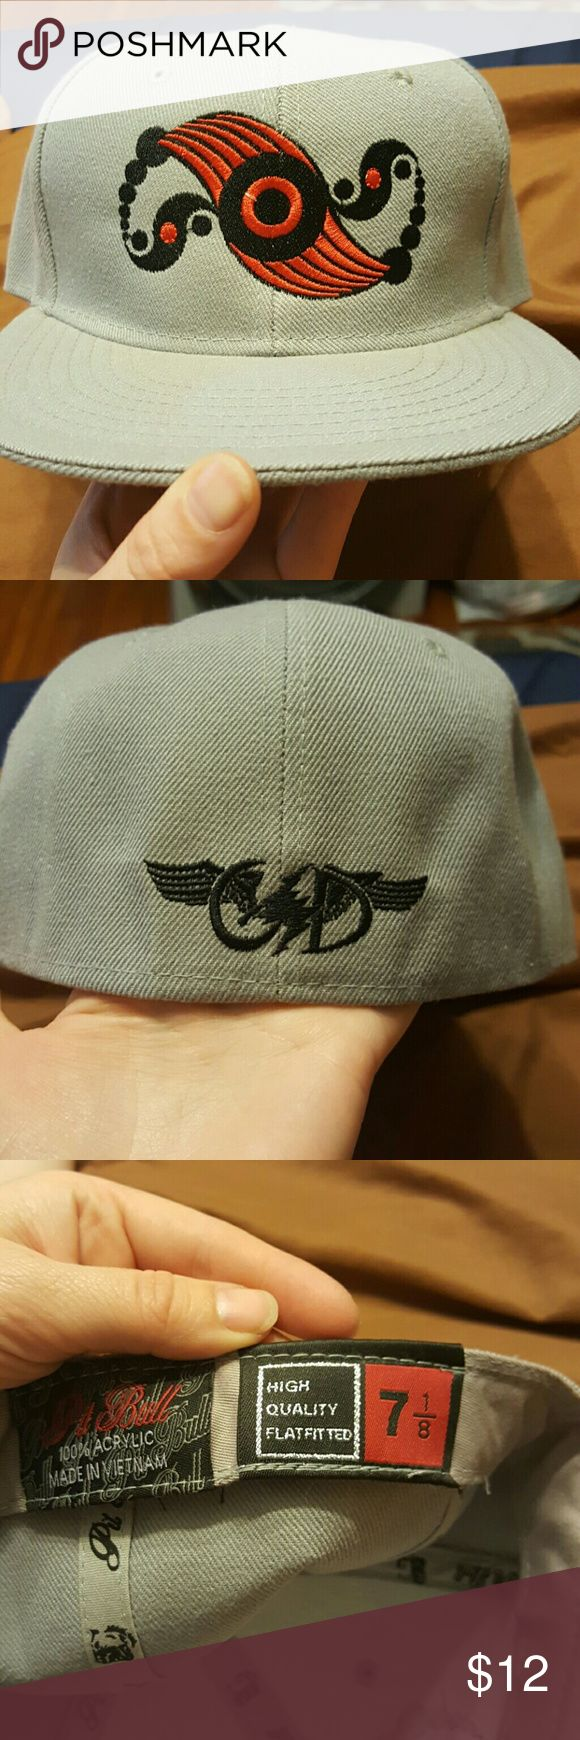 Flat brim fitted hat GSD Grateful Dead Purchased online but it is too small. Brand new, never worn. Smoke and pet-free home. GSD Accessories Hats